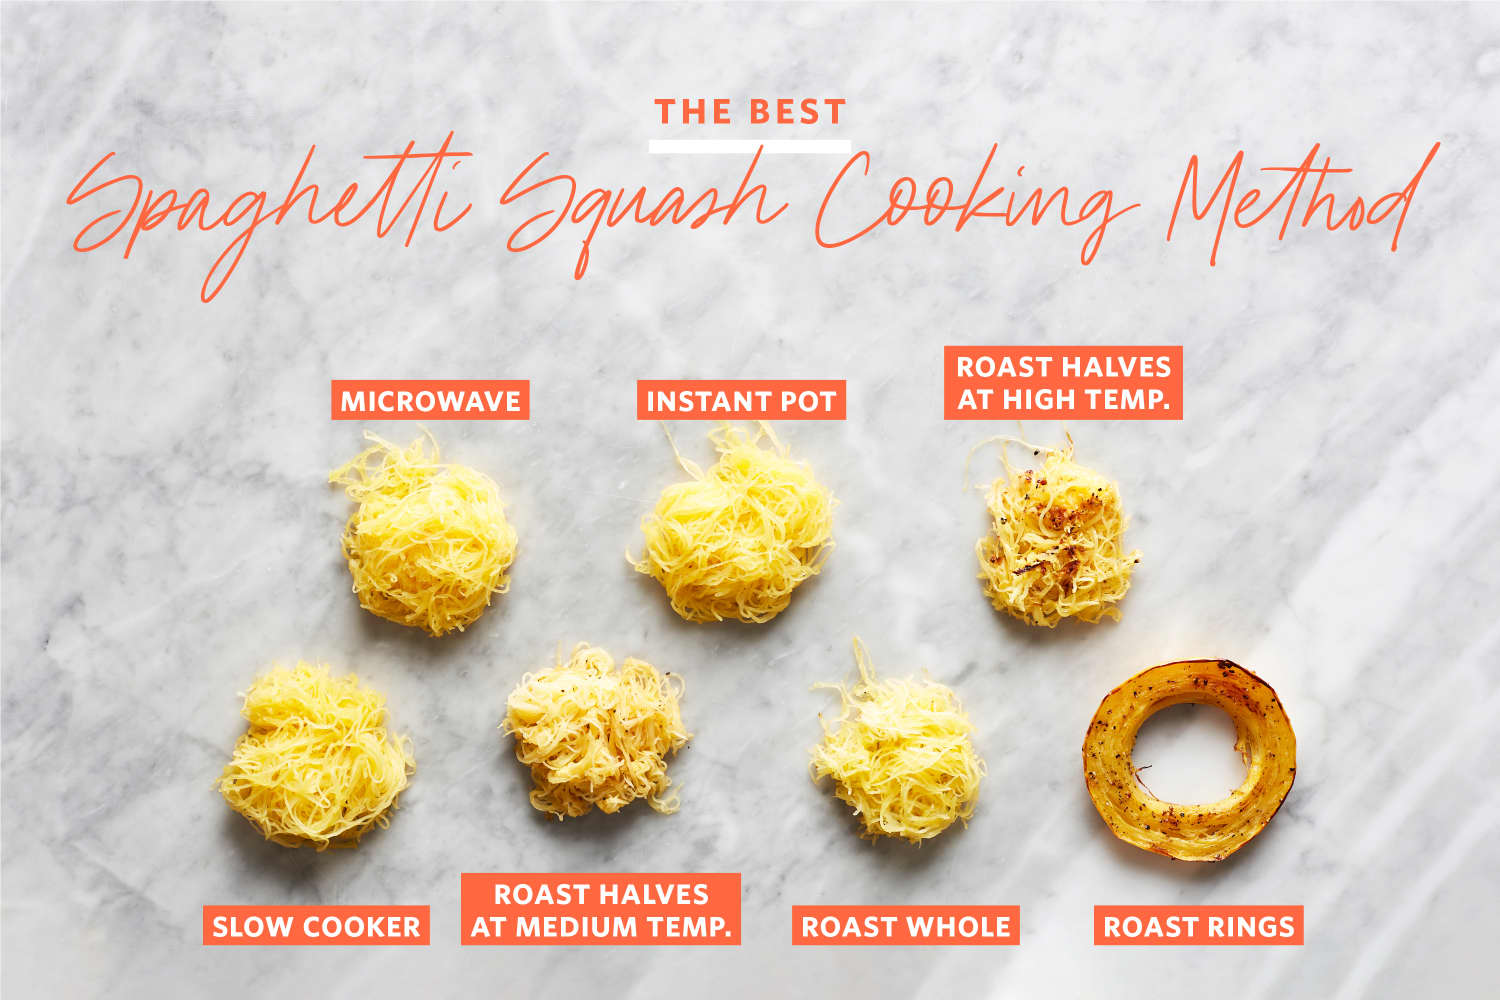 We Tried 7 Methods for Cooking Spaghetti Squash and Found 2 Winners